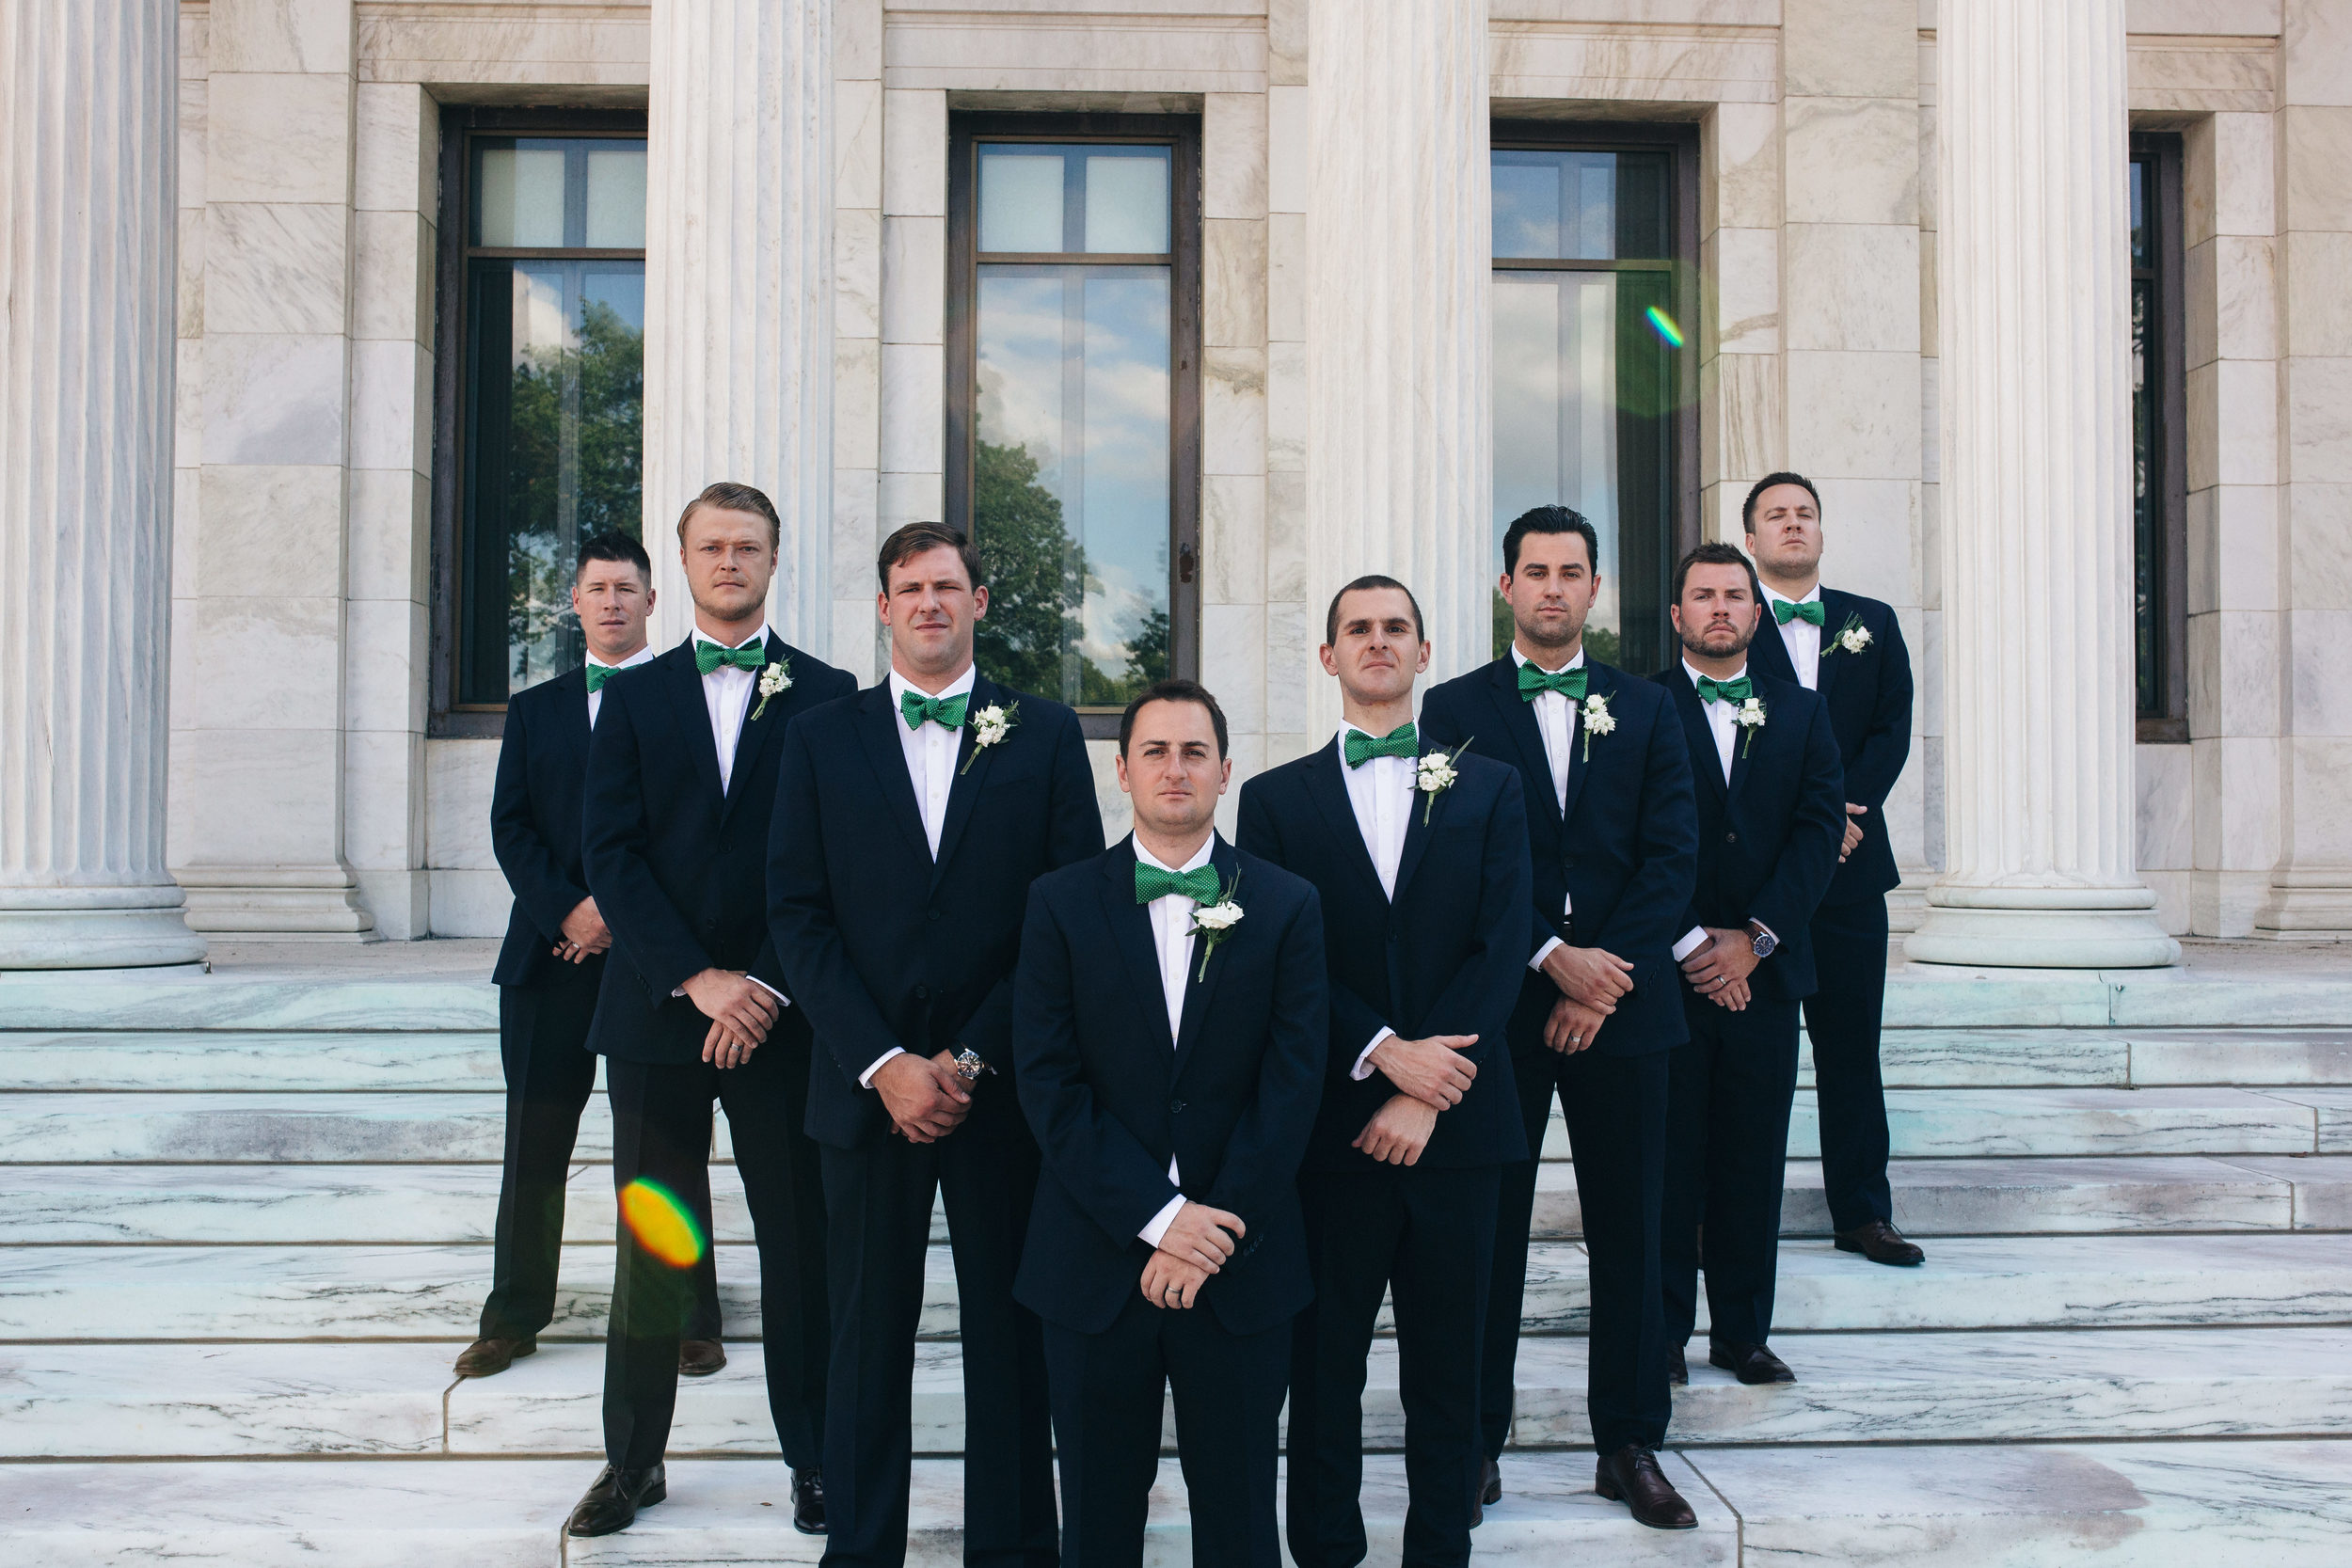 Groomsmen in black suits and kelly green bow ties.